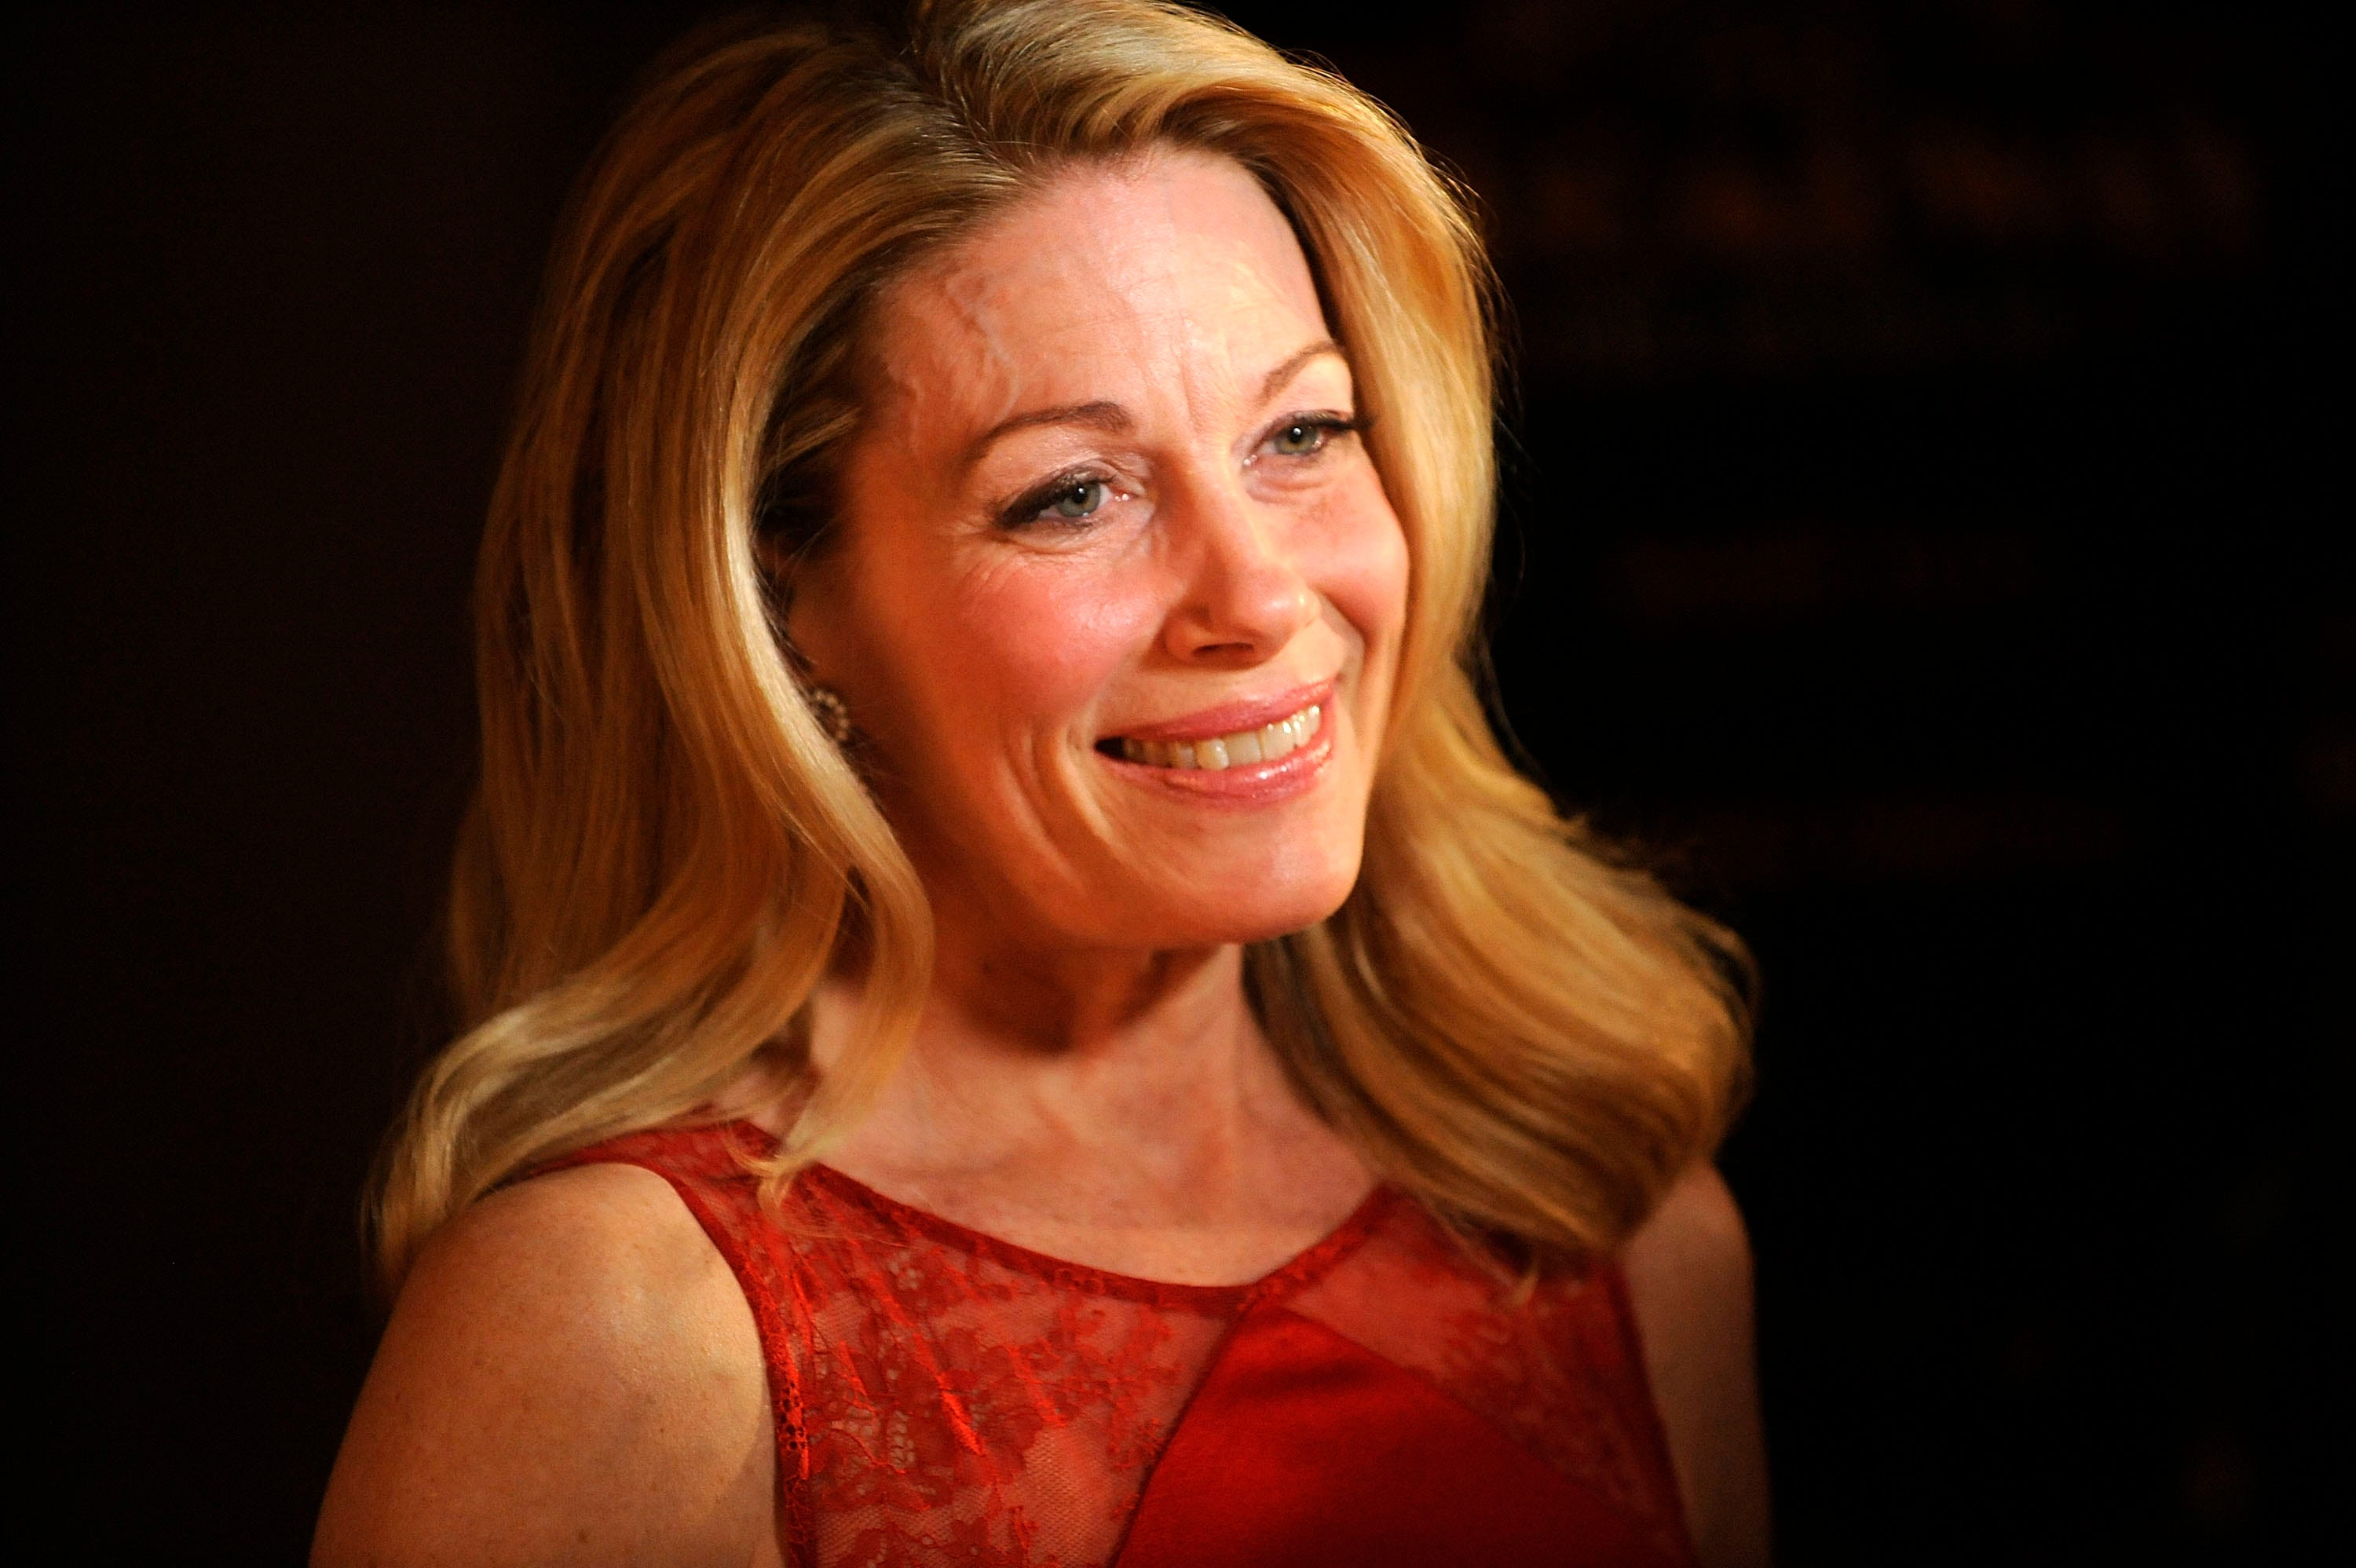 Forum on this topic: Maude Guerin, marin-mazzie/